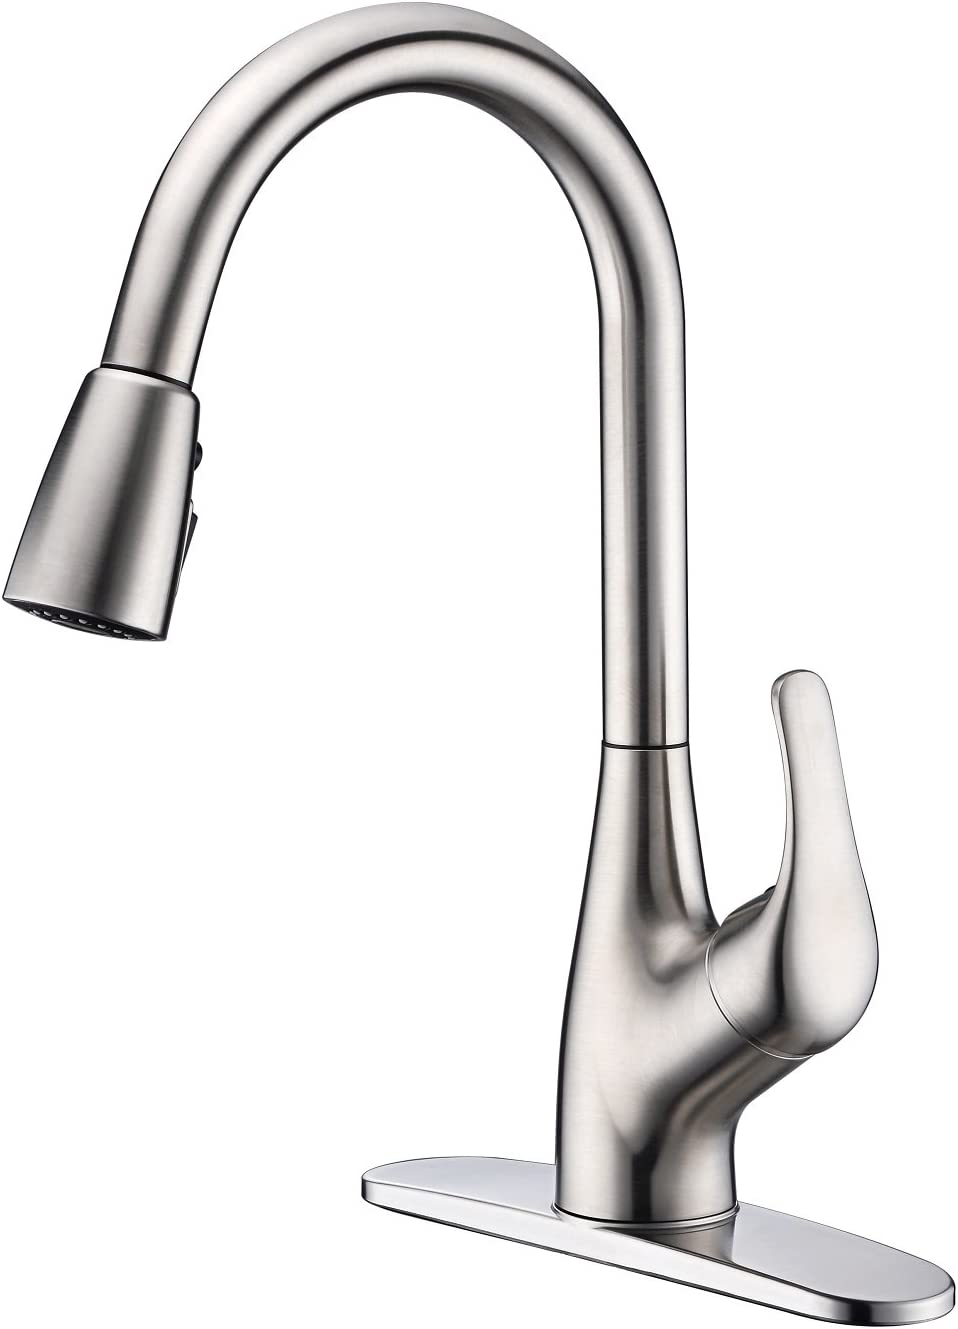 Top 10 Best Kitchen Faucets under $100, $150 to $200 Reviews in 2020 9